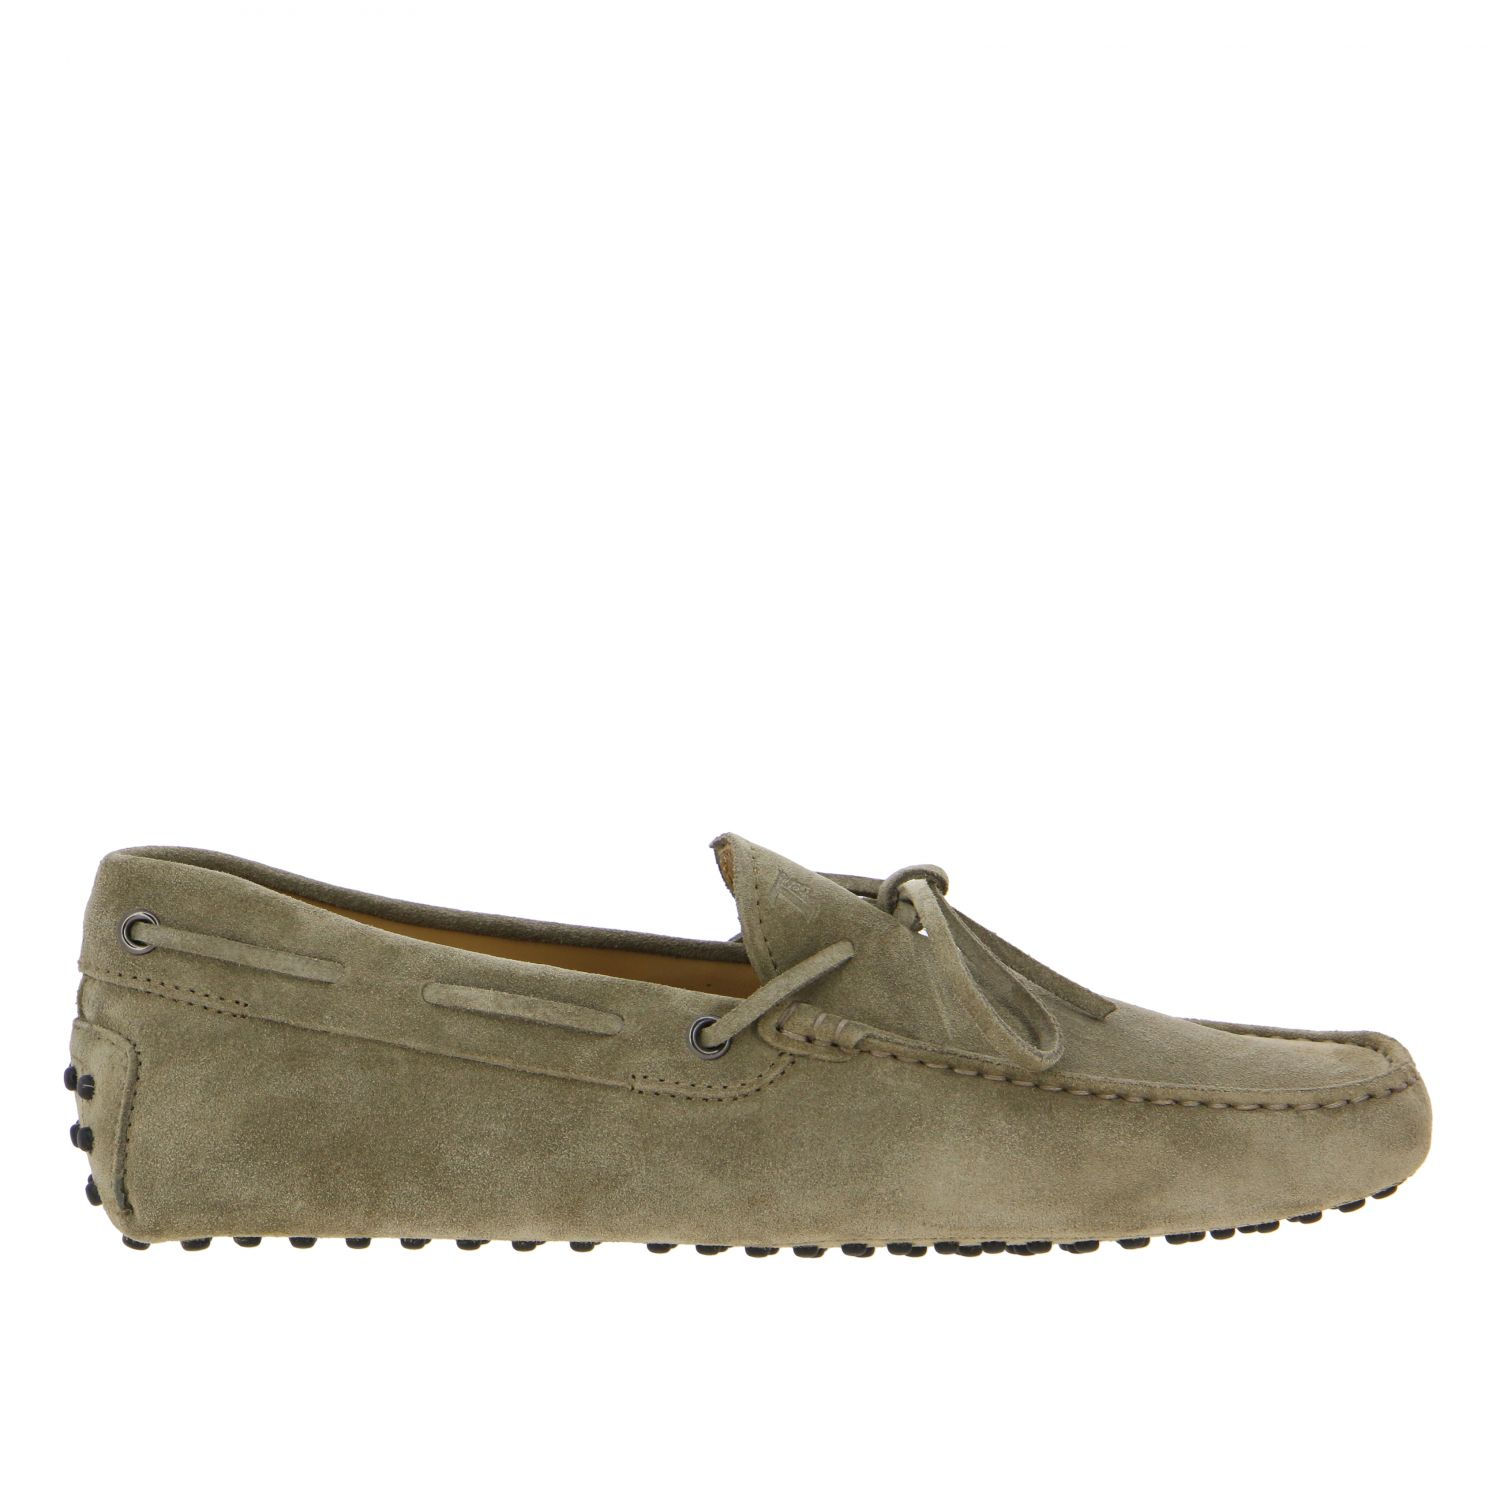 Tod's New Gommini moccasin in suede with strap beige 1